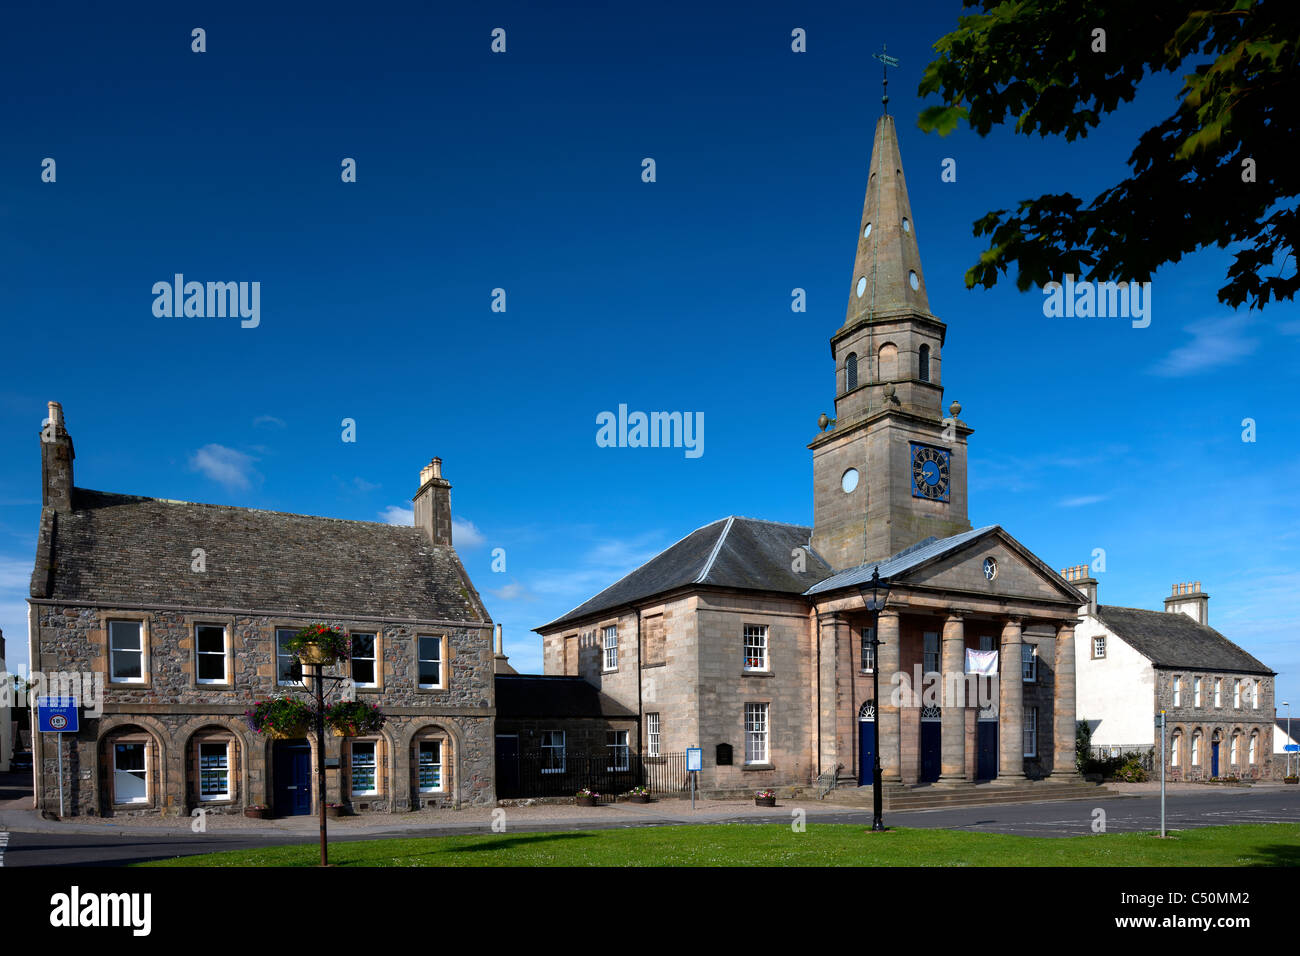 Bellie Parish Church in Fochabers village, Moray Firth, Scotland - Stock Image